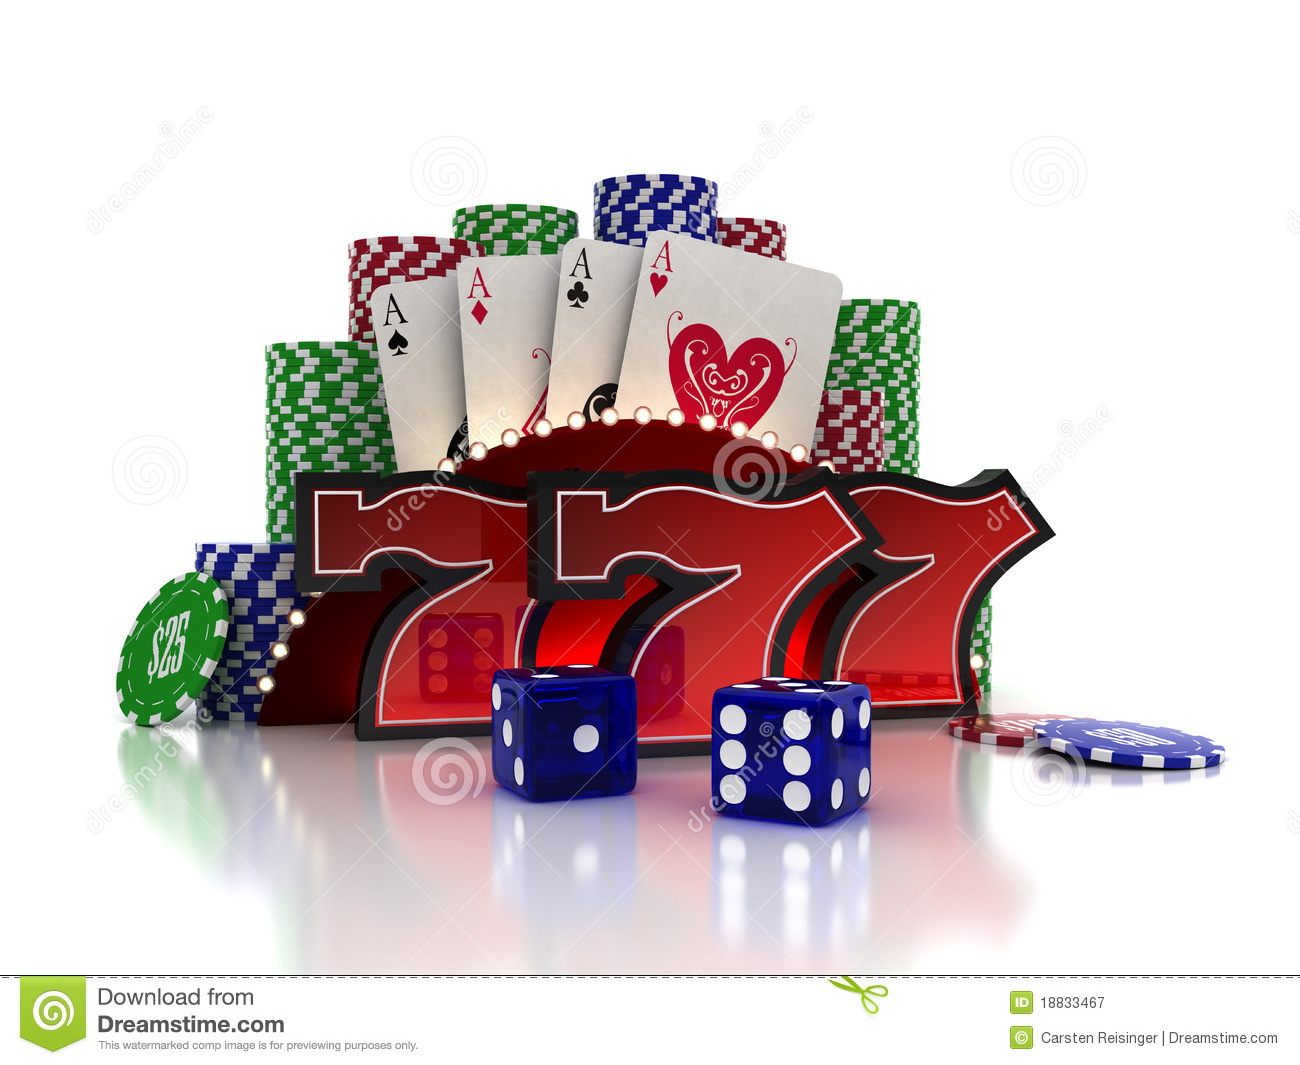 online casino roulette casino holidays